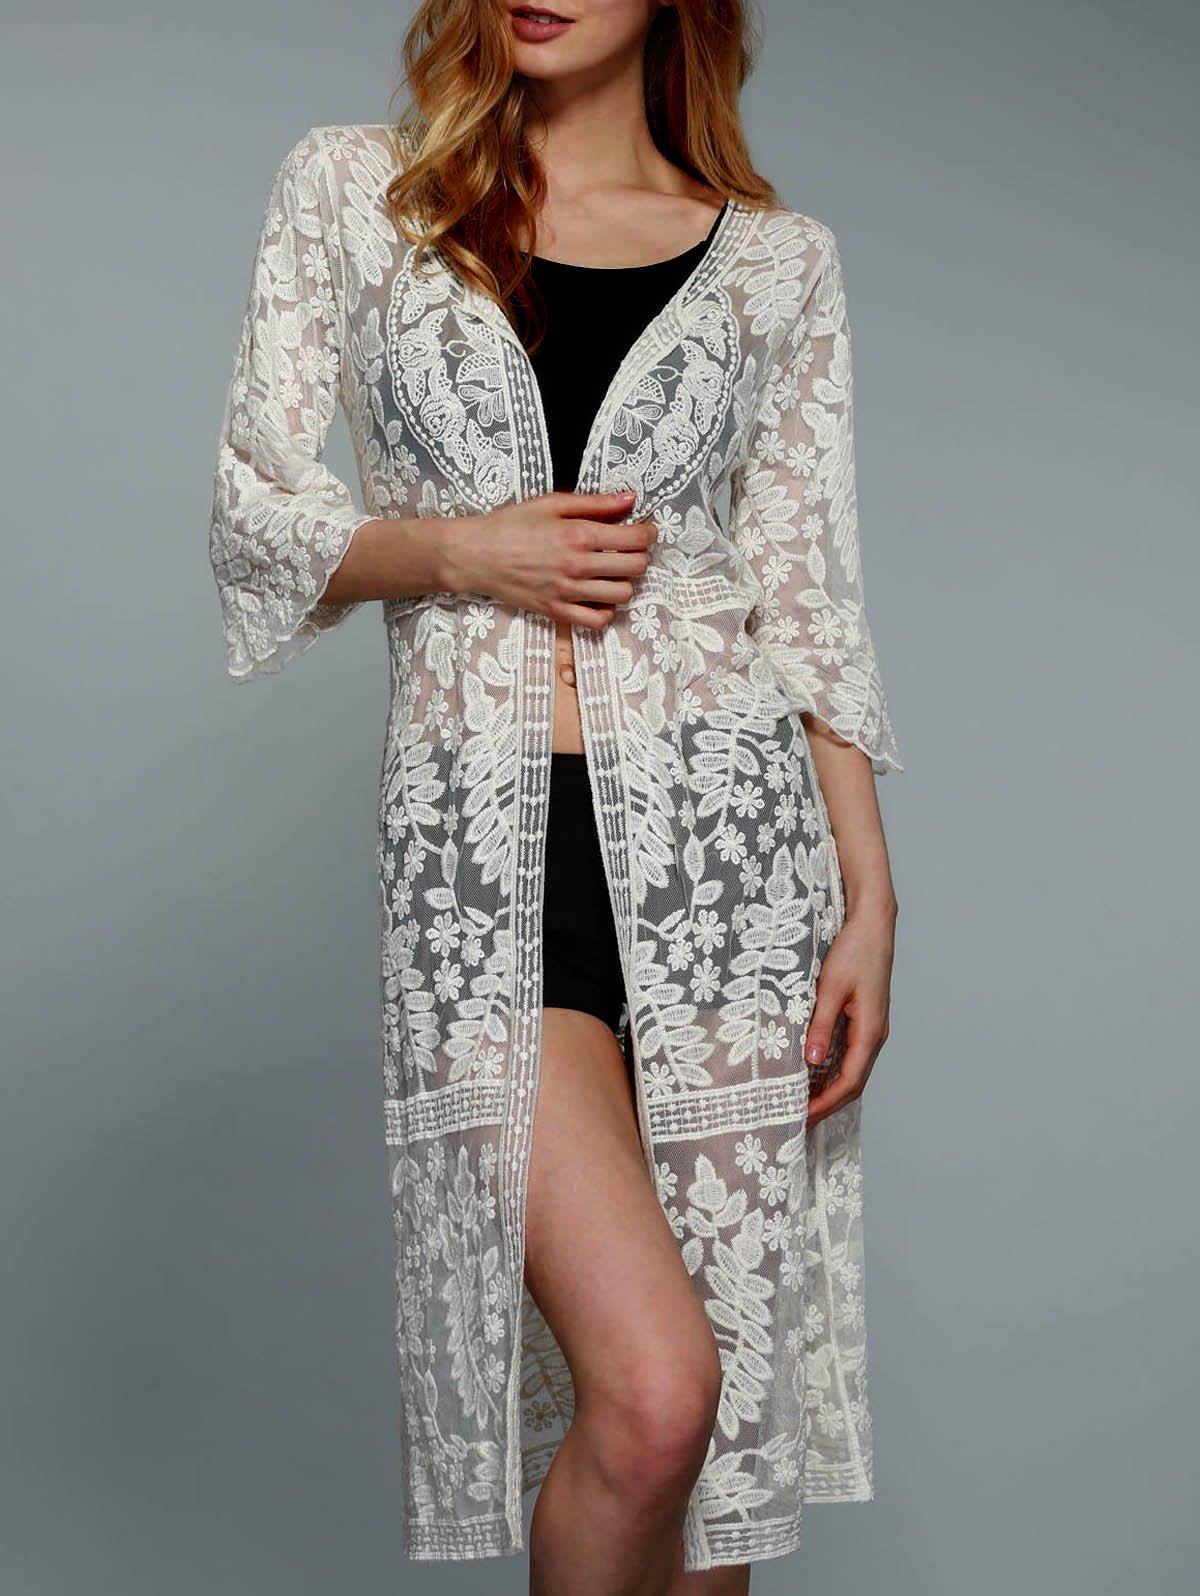 Stylish 3/4 Sleeve Solid Color Crochet Women's Cover-Up - OFF WHITE ONE SIZE(FIT SIZE XS TO M)